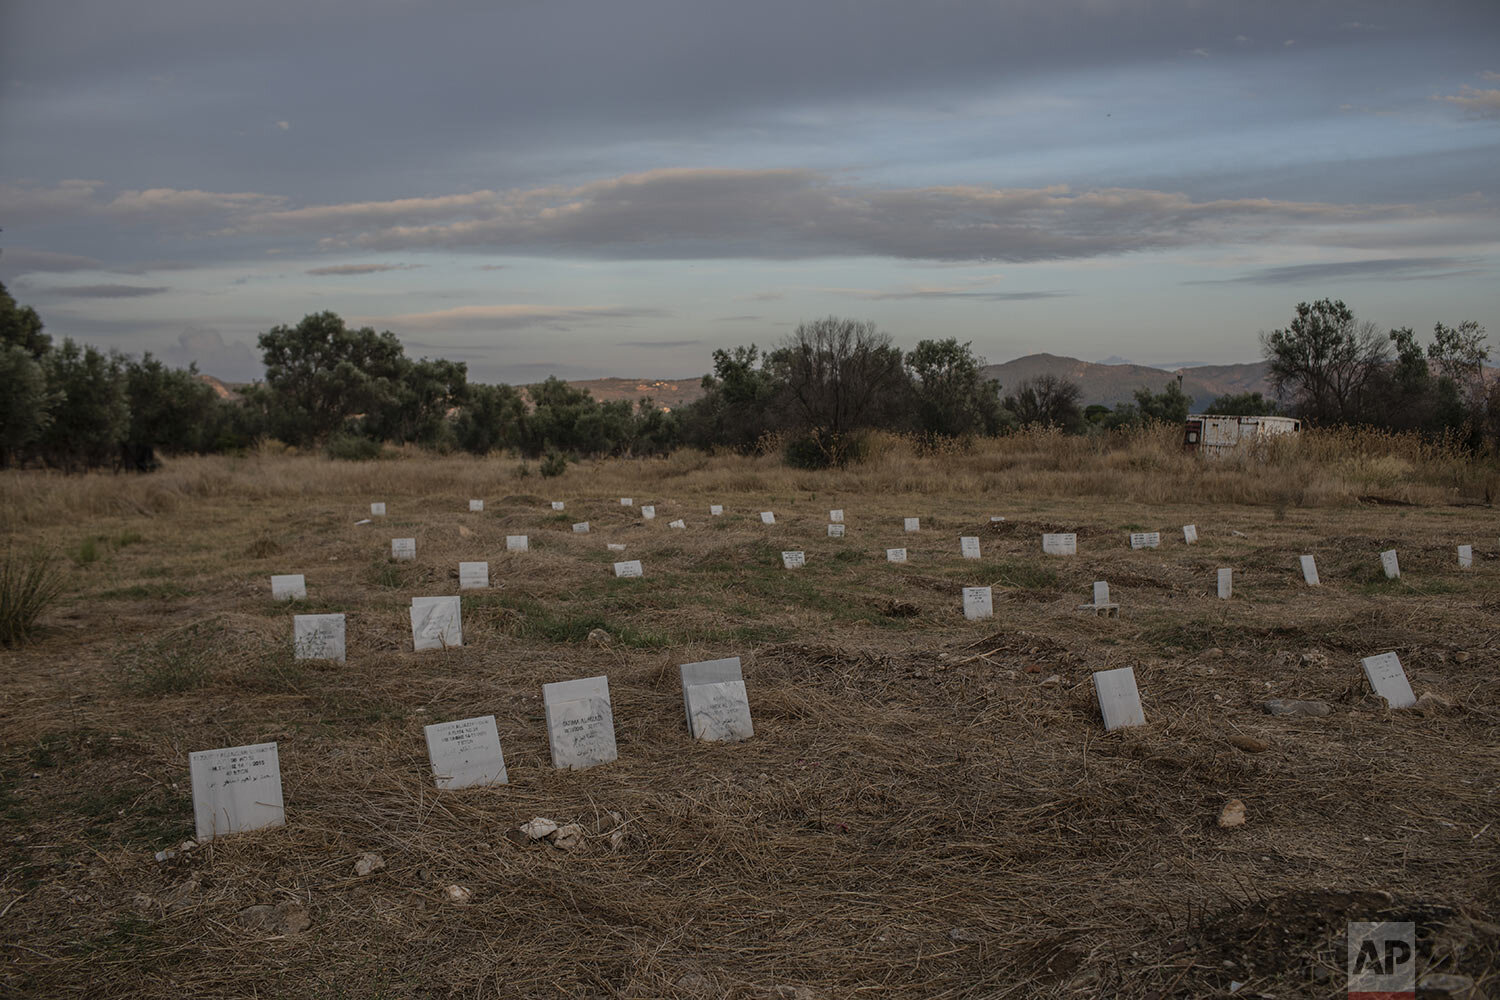 Tombstones marking the graves of migrants and refugees who drowned at sea while crossing from nearby Turkey are seen at a cemetery near the village of Kato Tritos on the northeastern Aegean island of Lesbos, Greece, Saturday Oct. 5, 2019. (AP Photo/Petros Giannakouris)